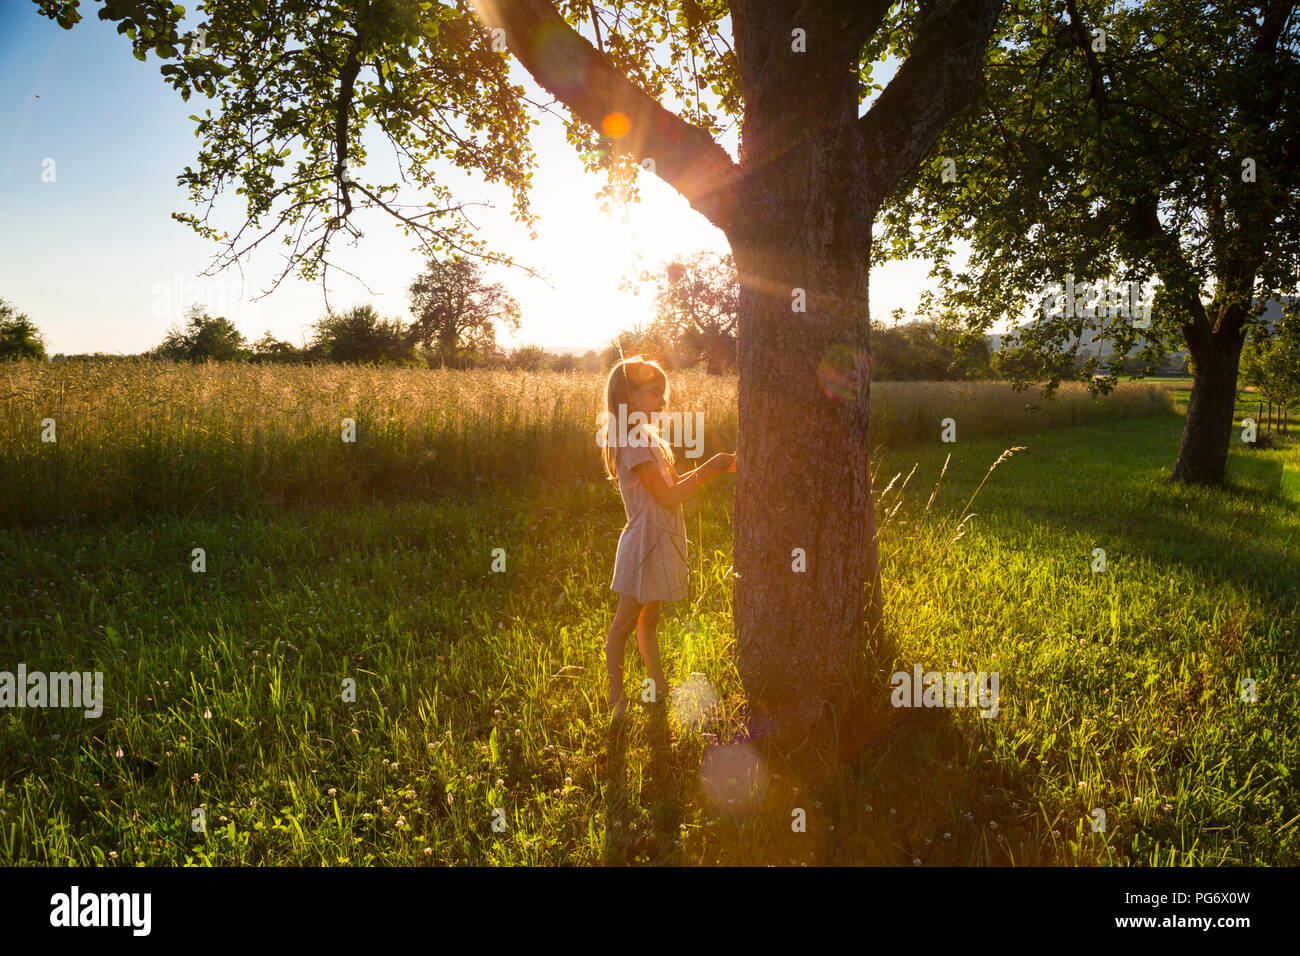 Young girl standing at tree against evening sun in summer - Stock Image